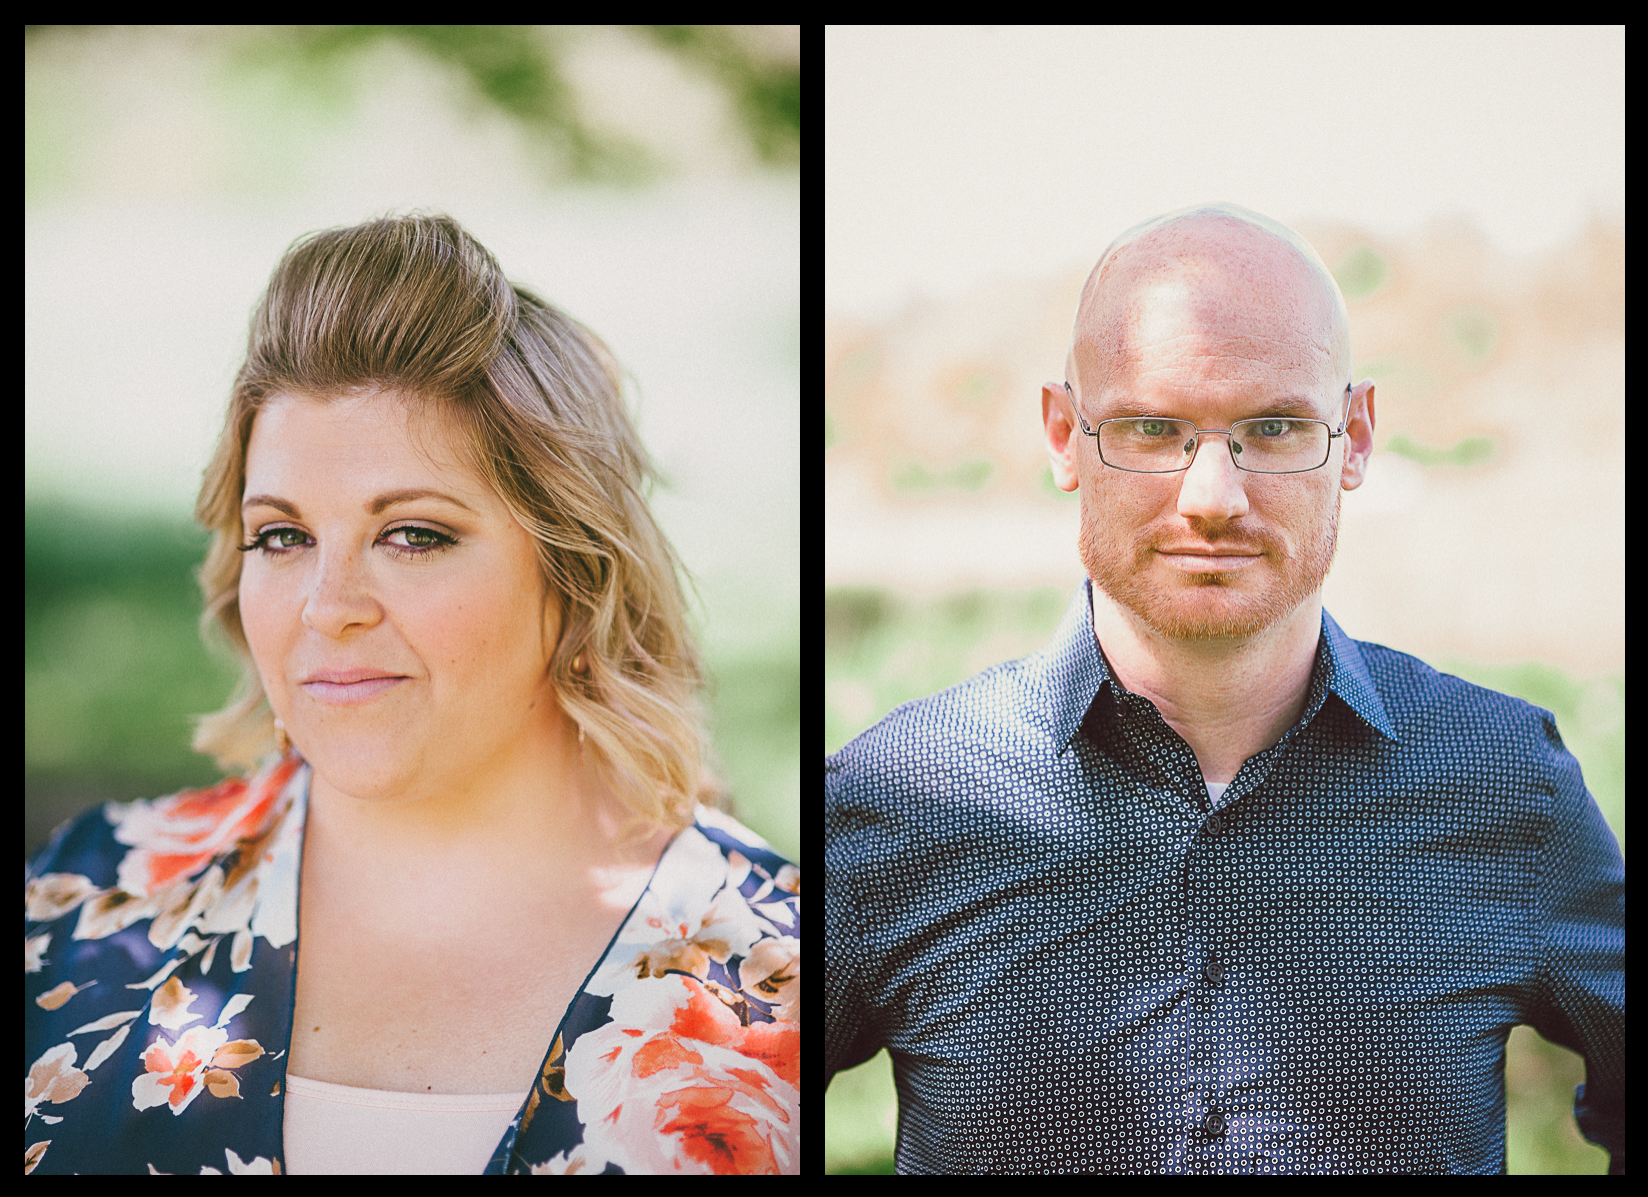 breighton-and-basette-photography-copyrighted-image-blog-jennifer-and-sean-engagement-collage-4.jpg